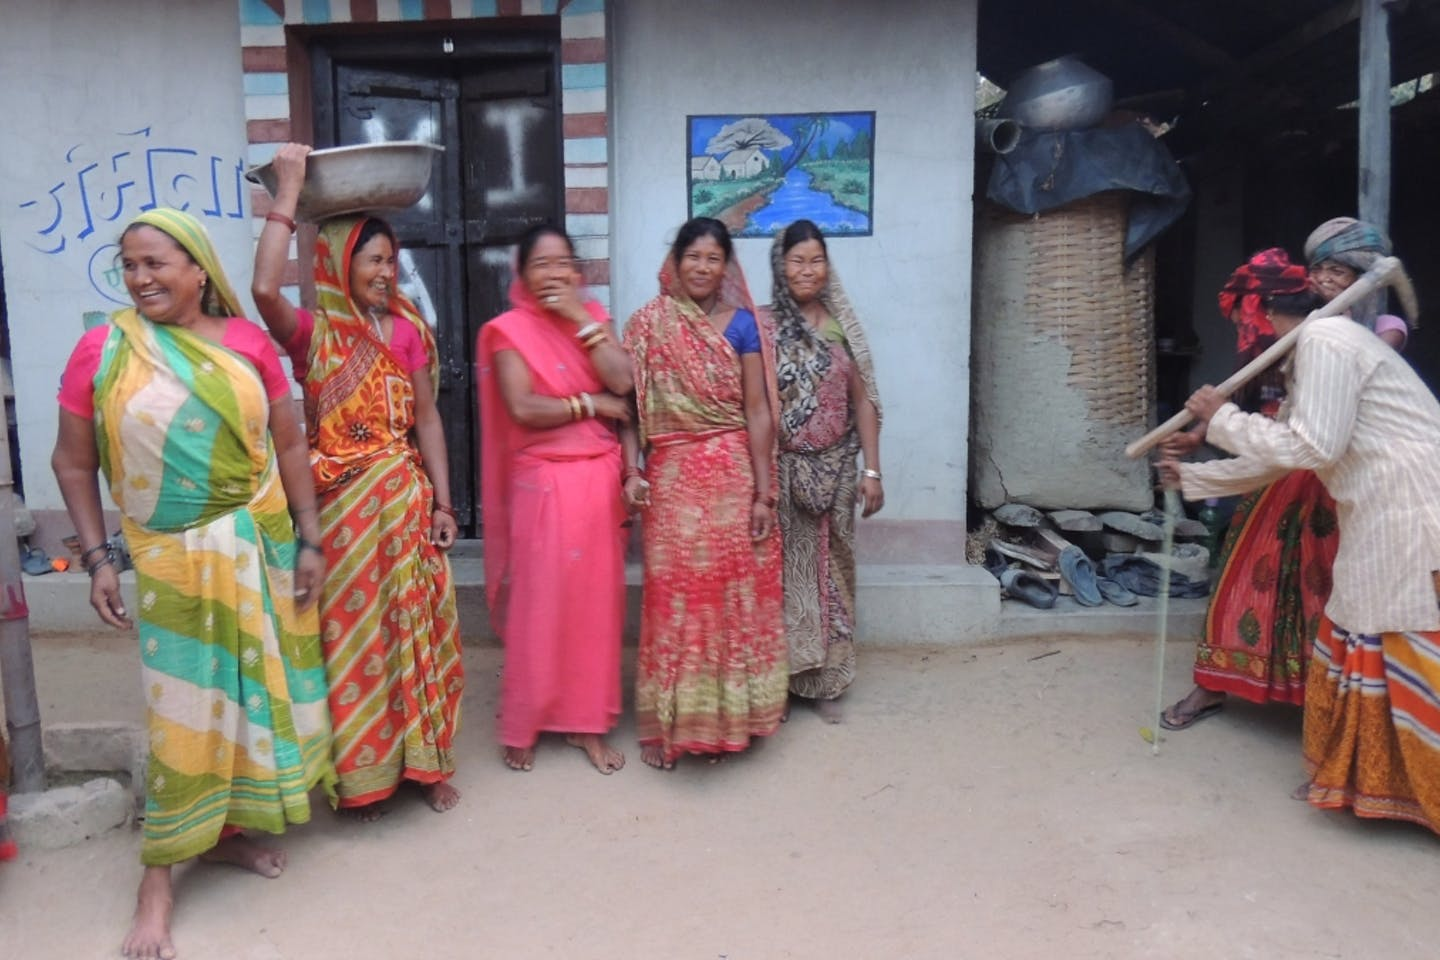 Bargaining Role Play on gender roles in agriculture in Saptari, Nepal.